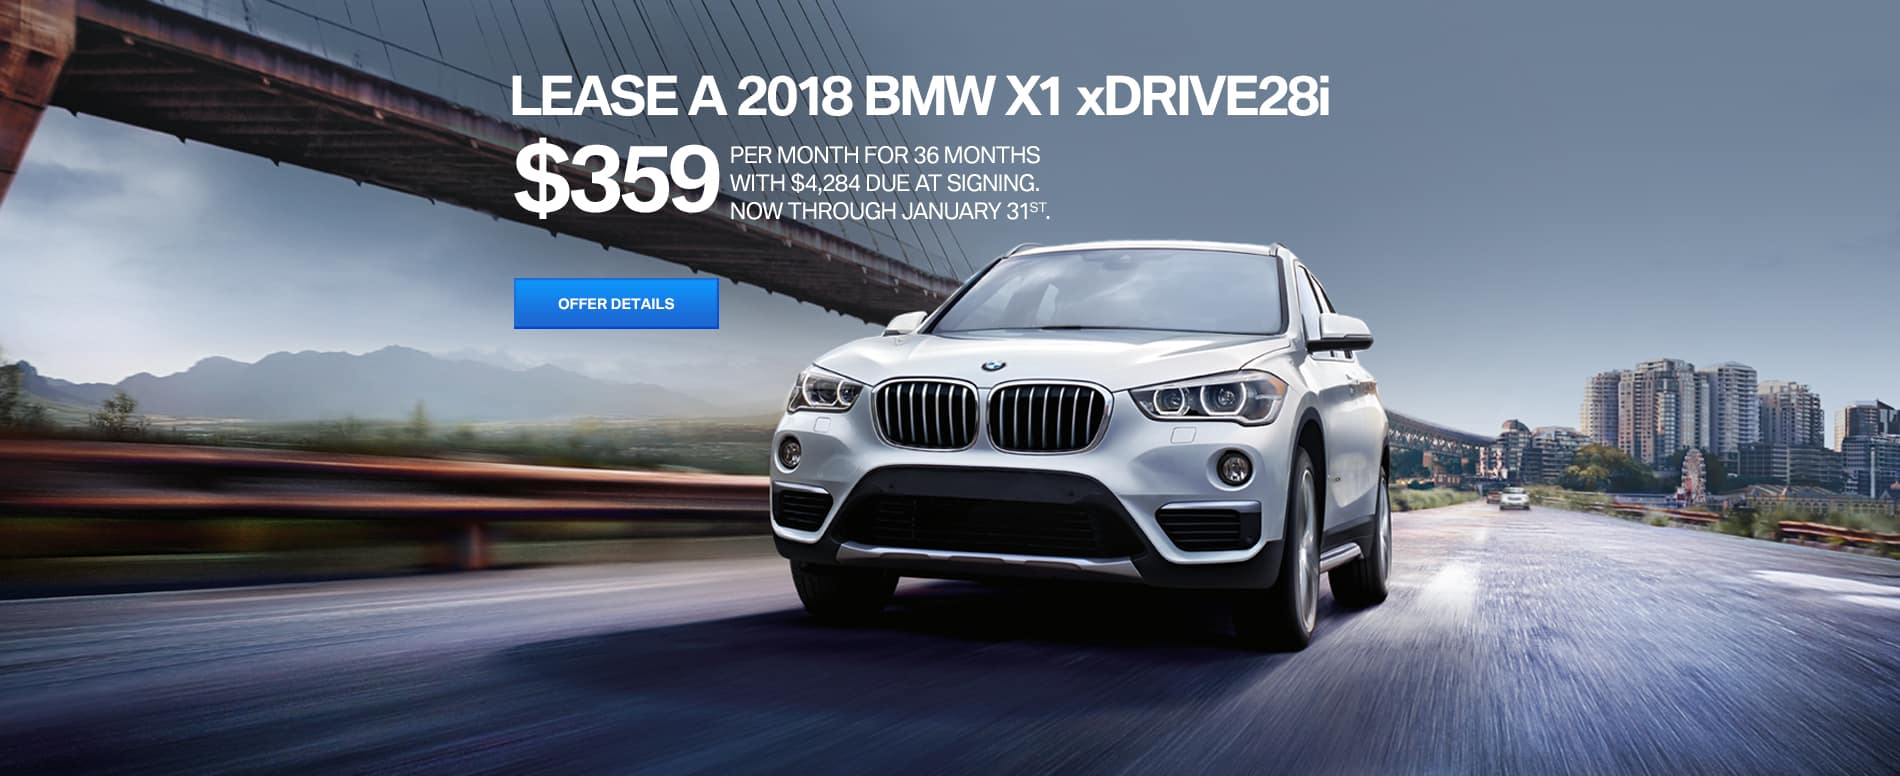 Rallye Bmw New Pre Owned Bmw Dealer In Long Island Ny